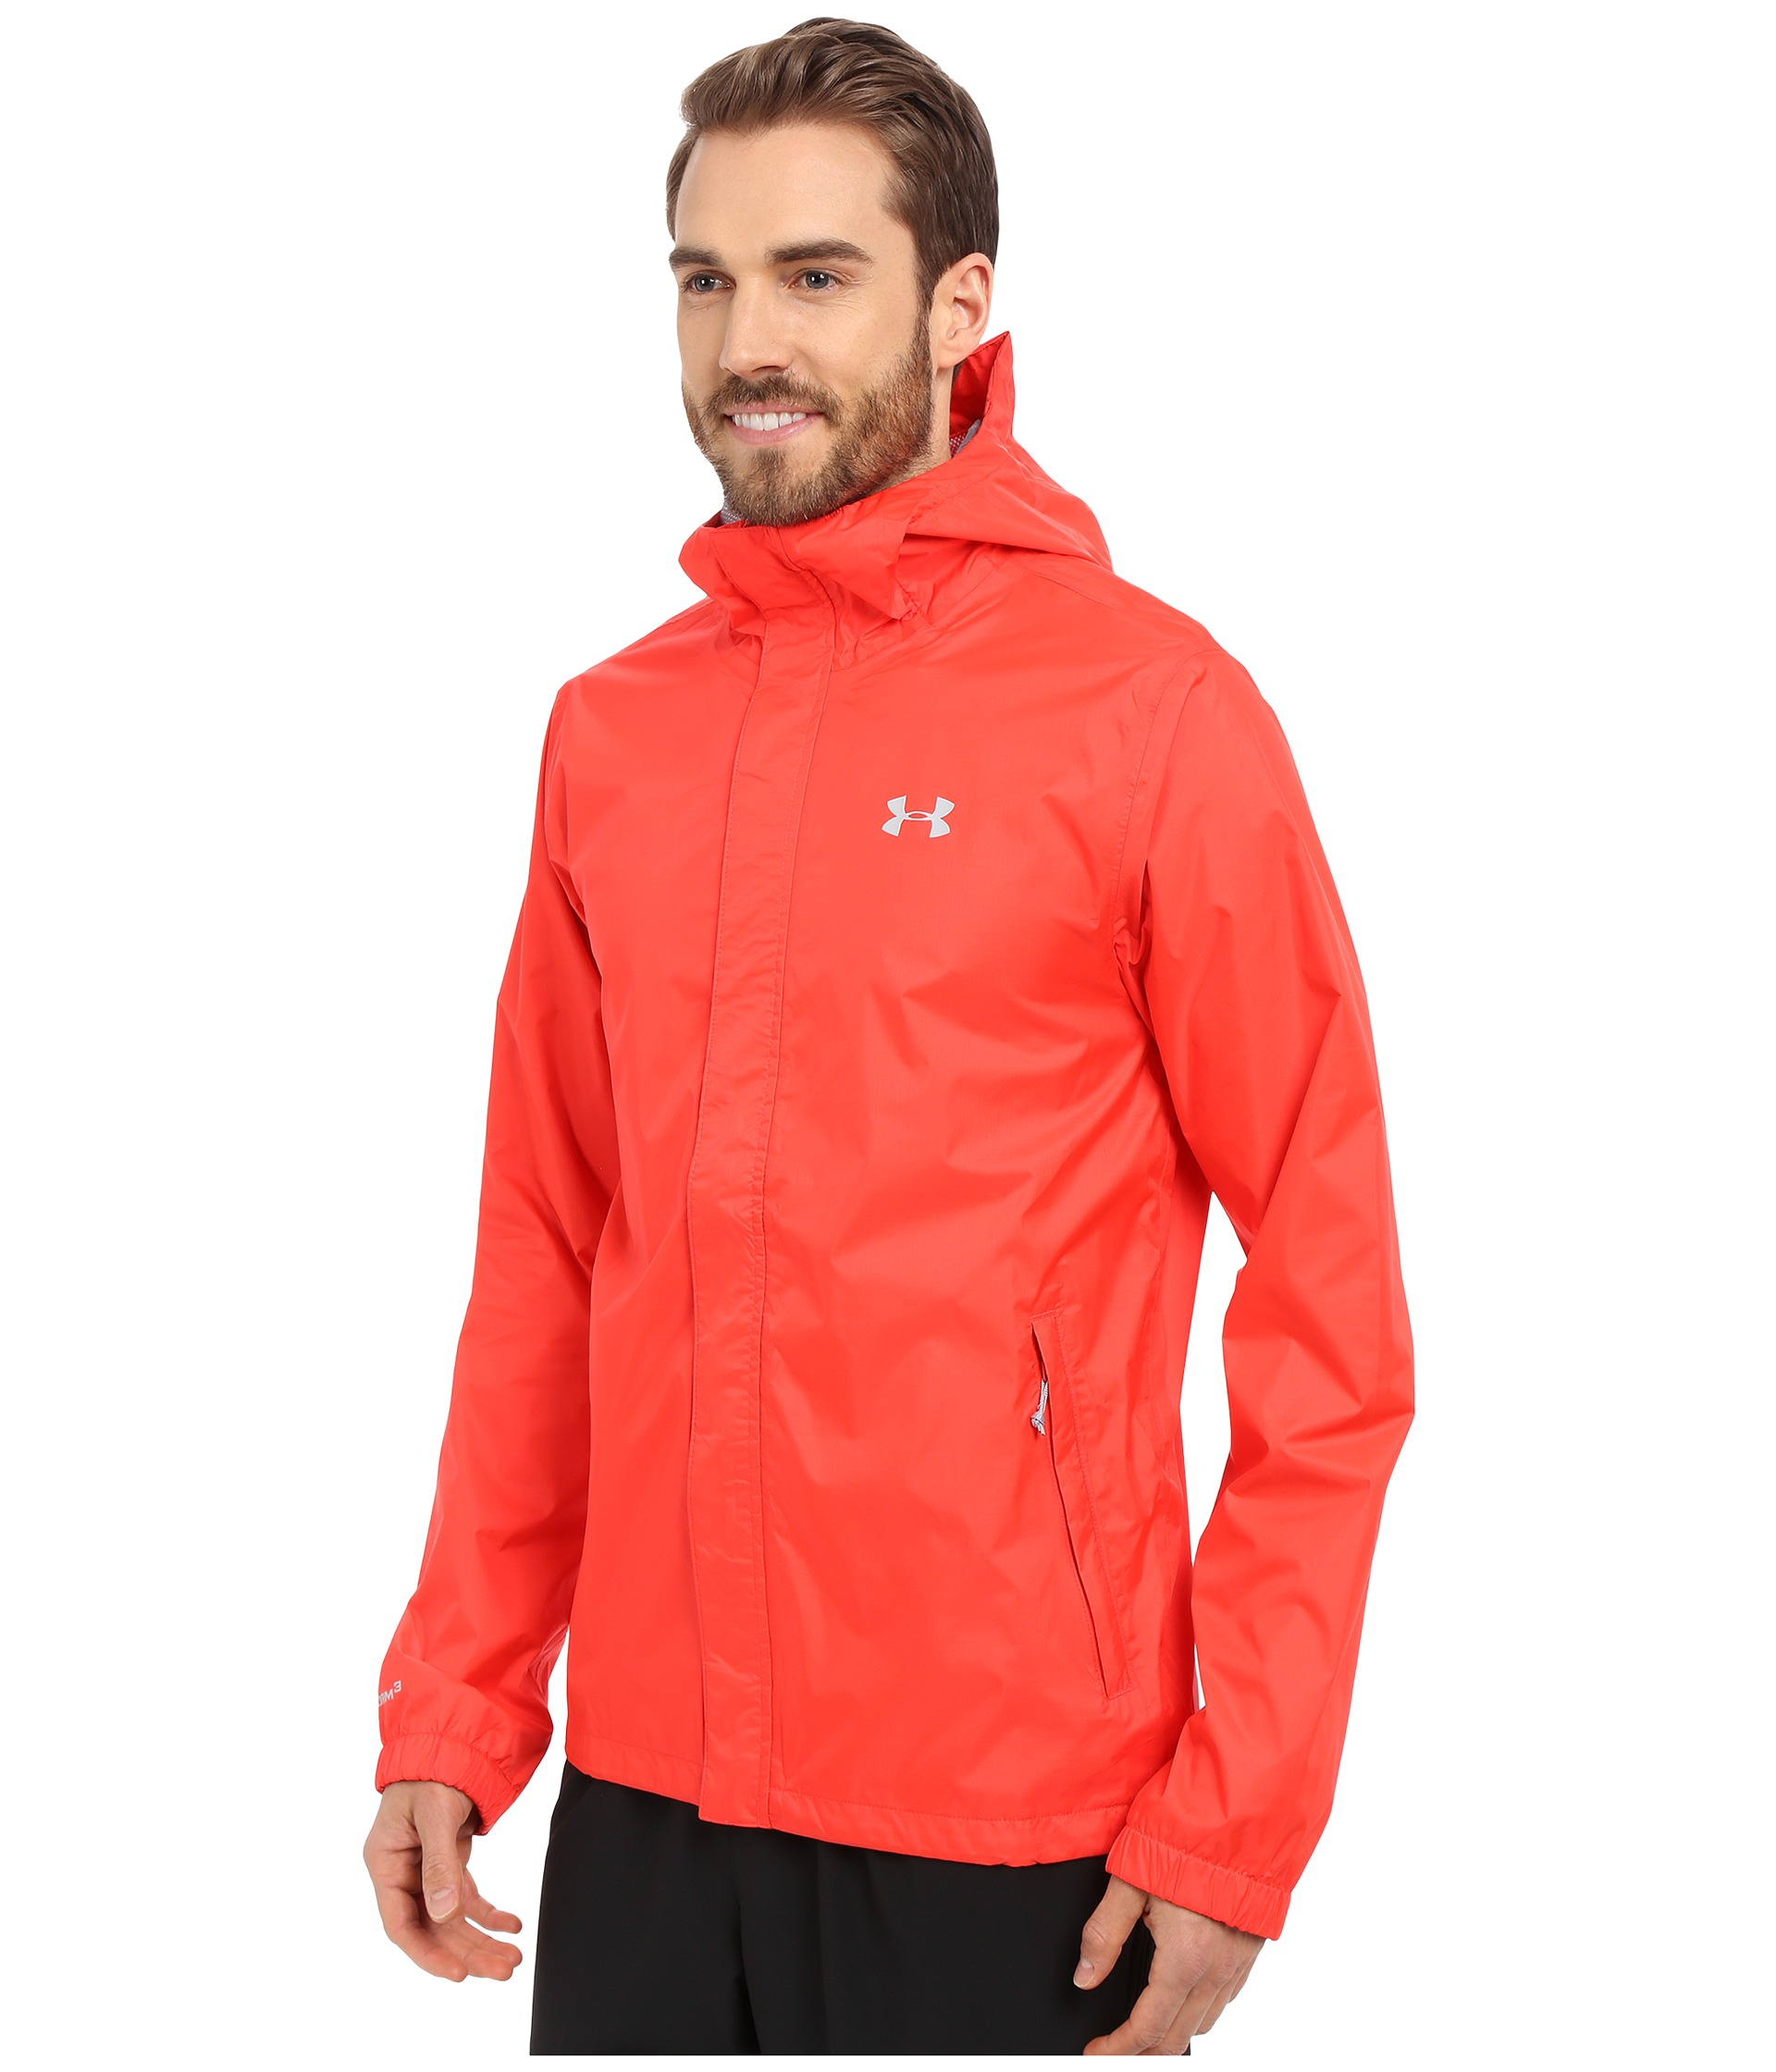 online store 1d707 f5812 ... Lyst - Under Armour Ua Bora Jacket in Red for Men ...